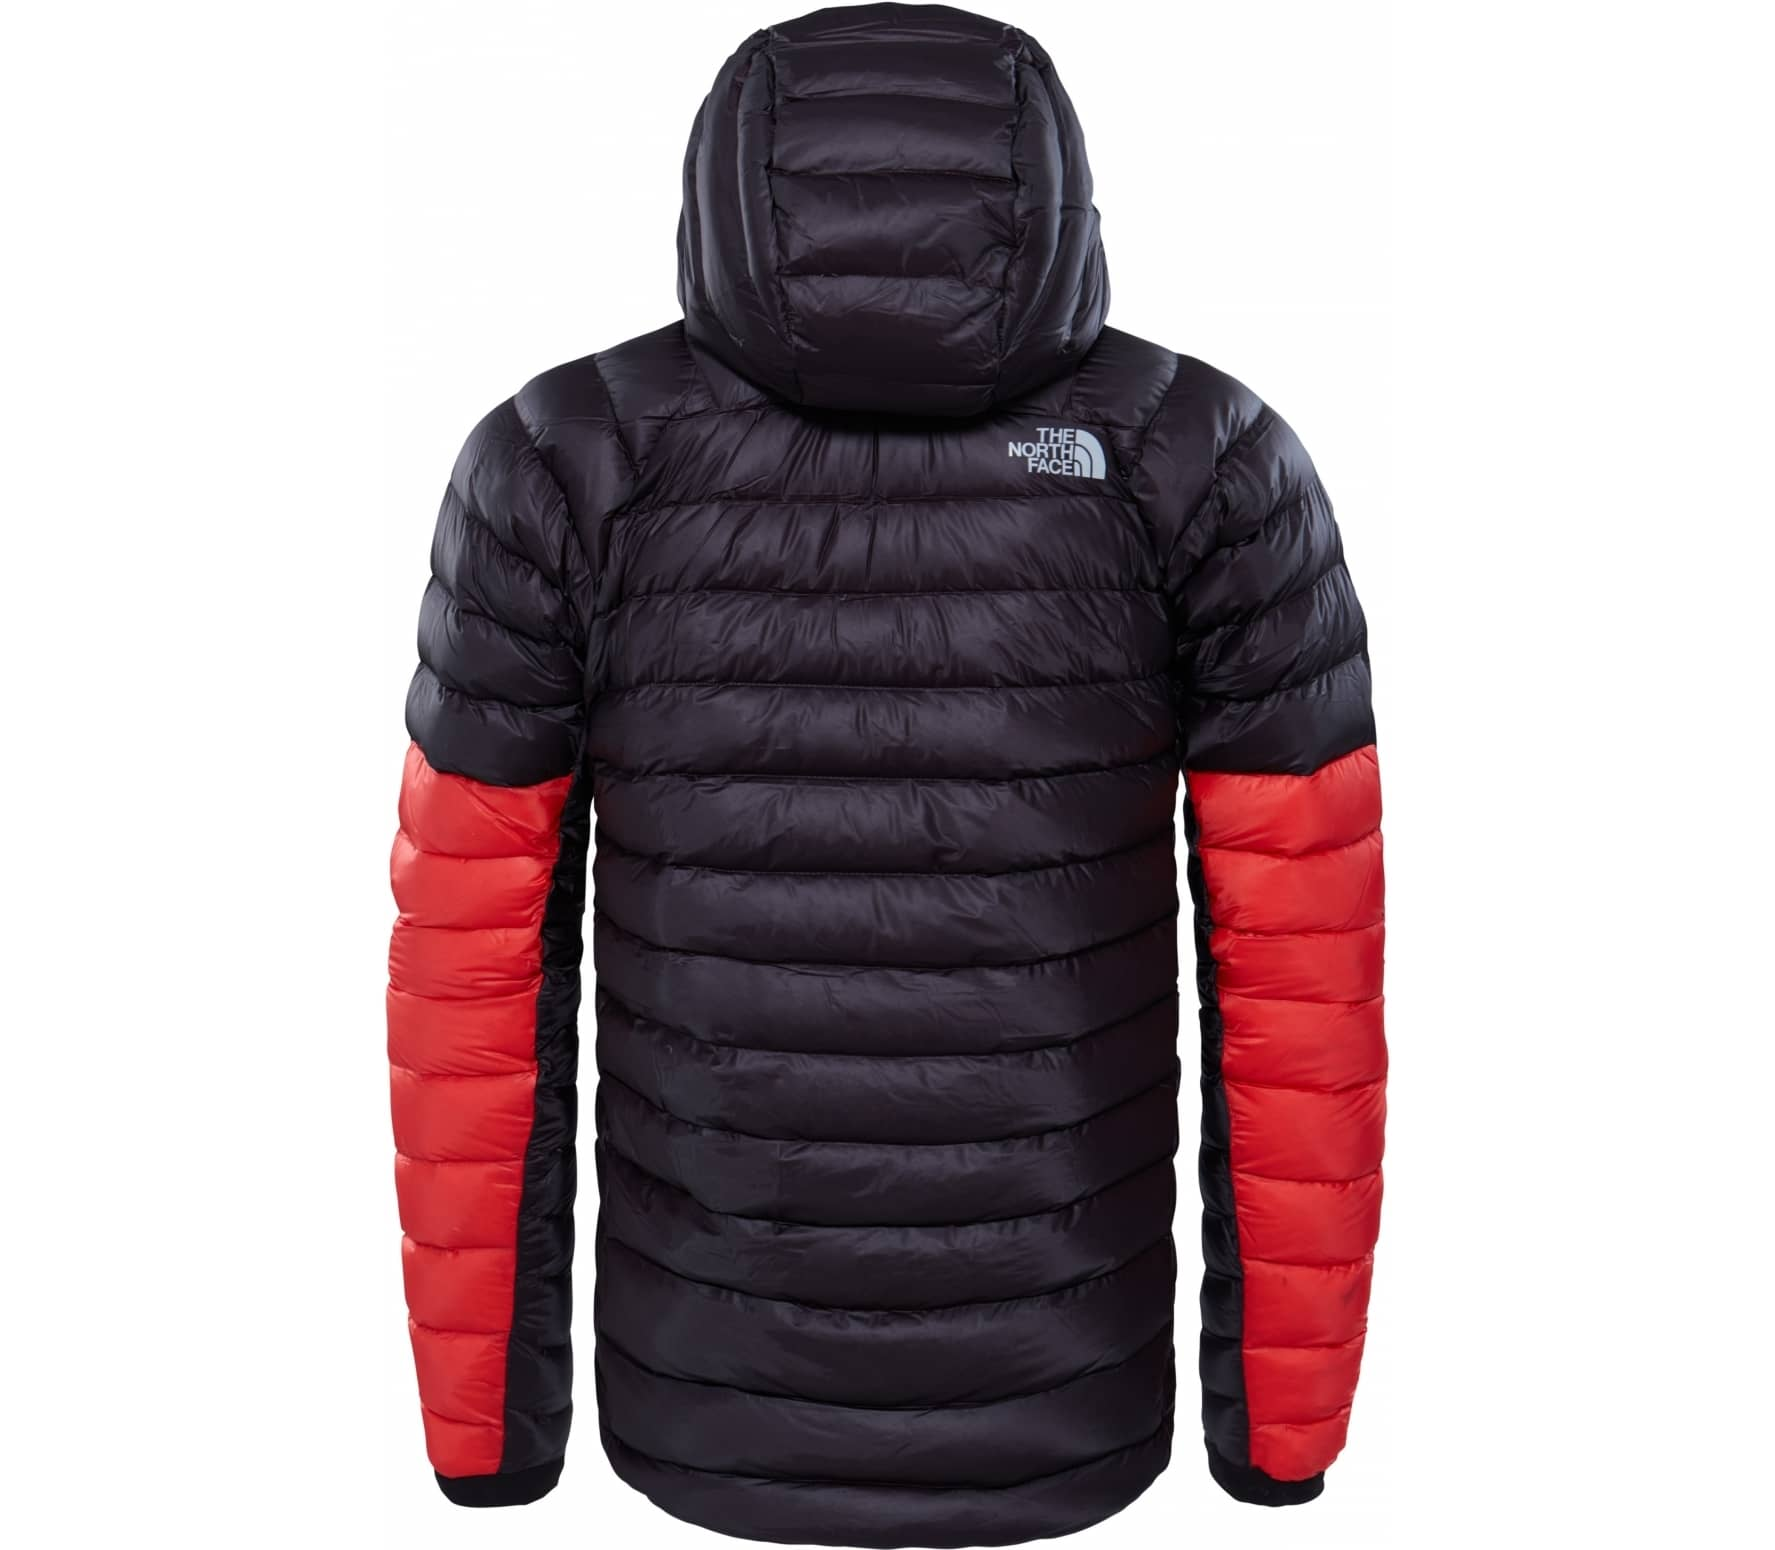 The north face daunenjacke herren